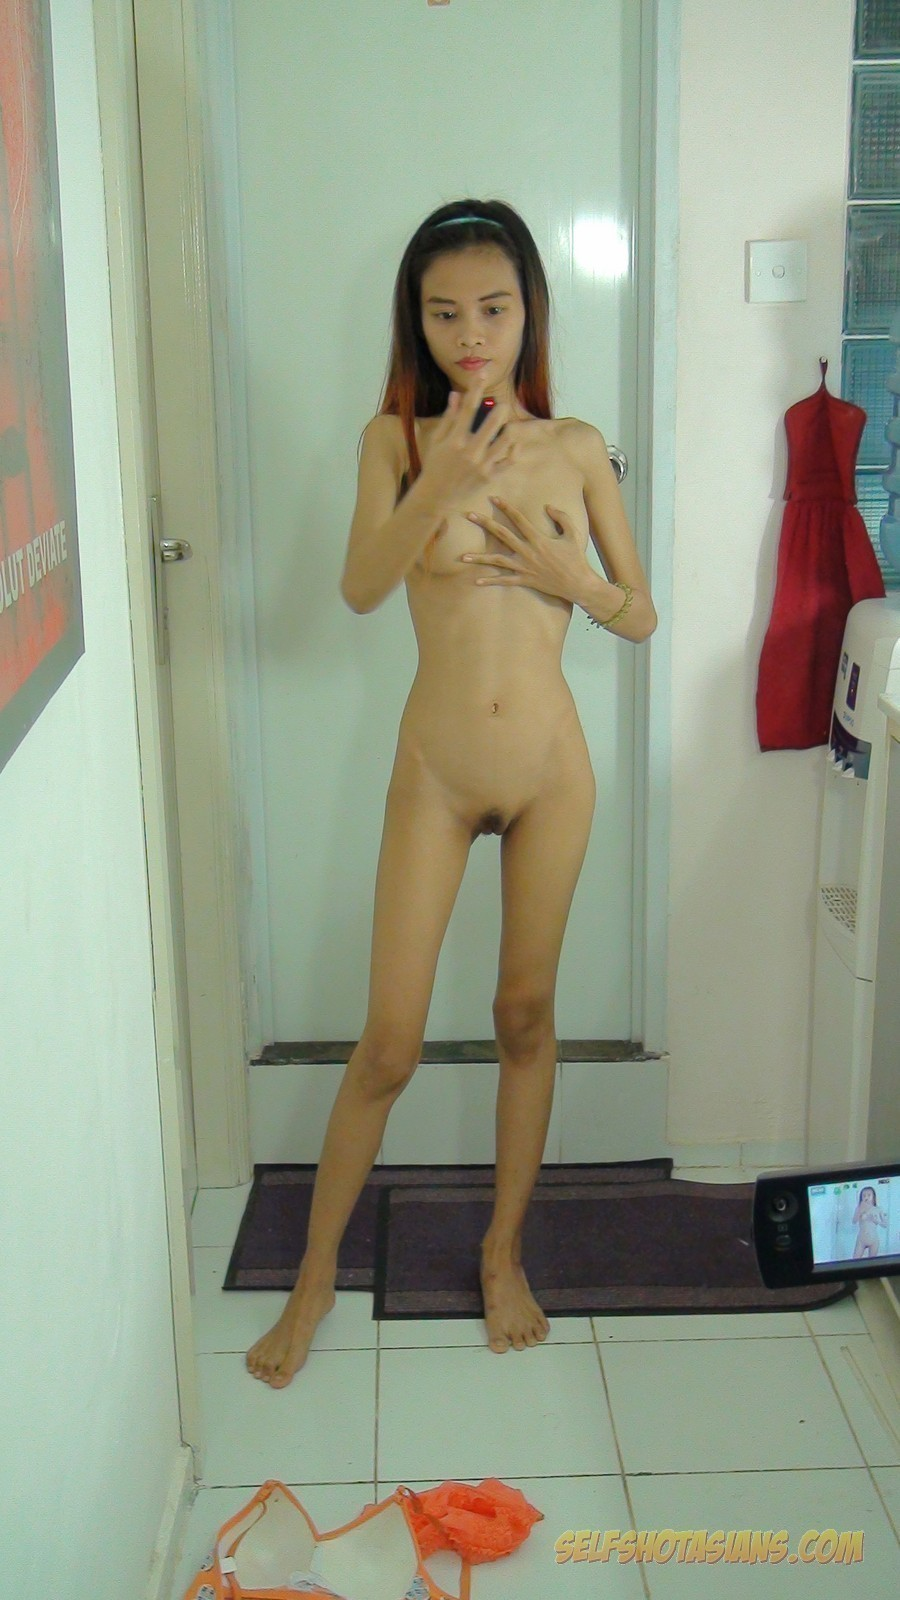 Hot and hard cosplay fucking in japan with all natural chick